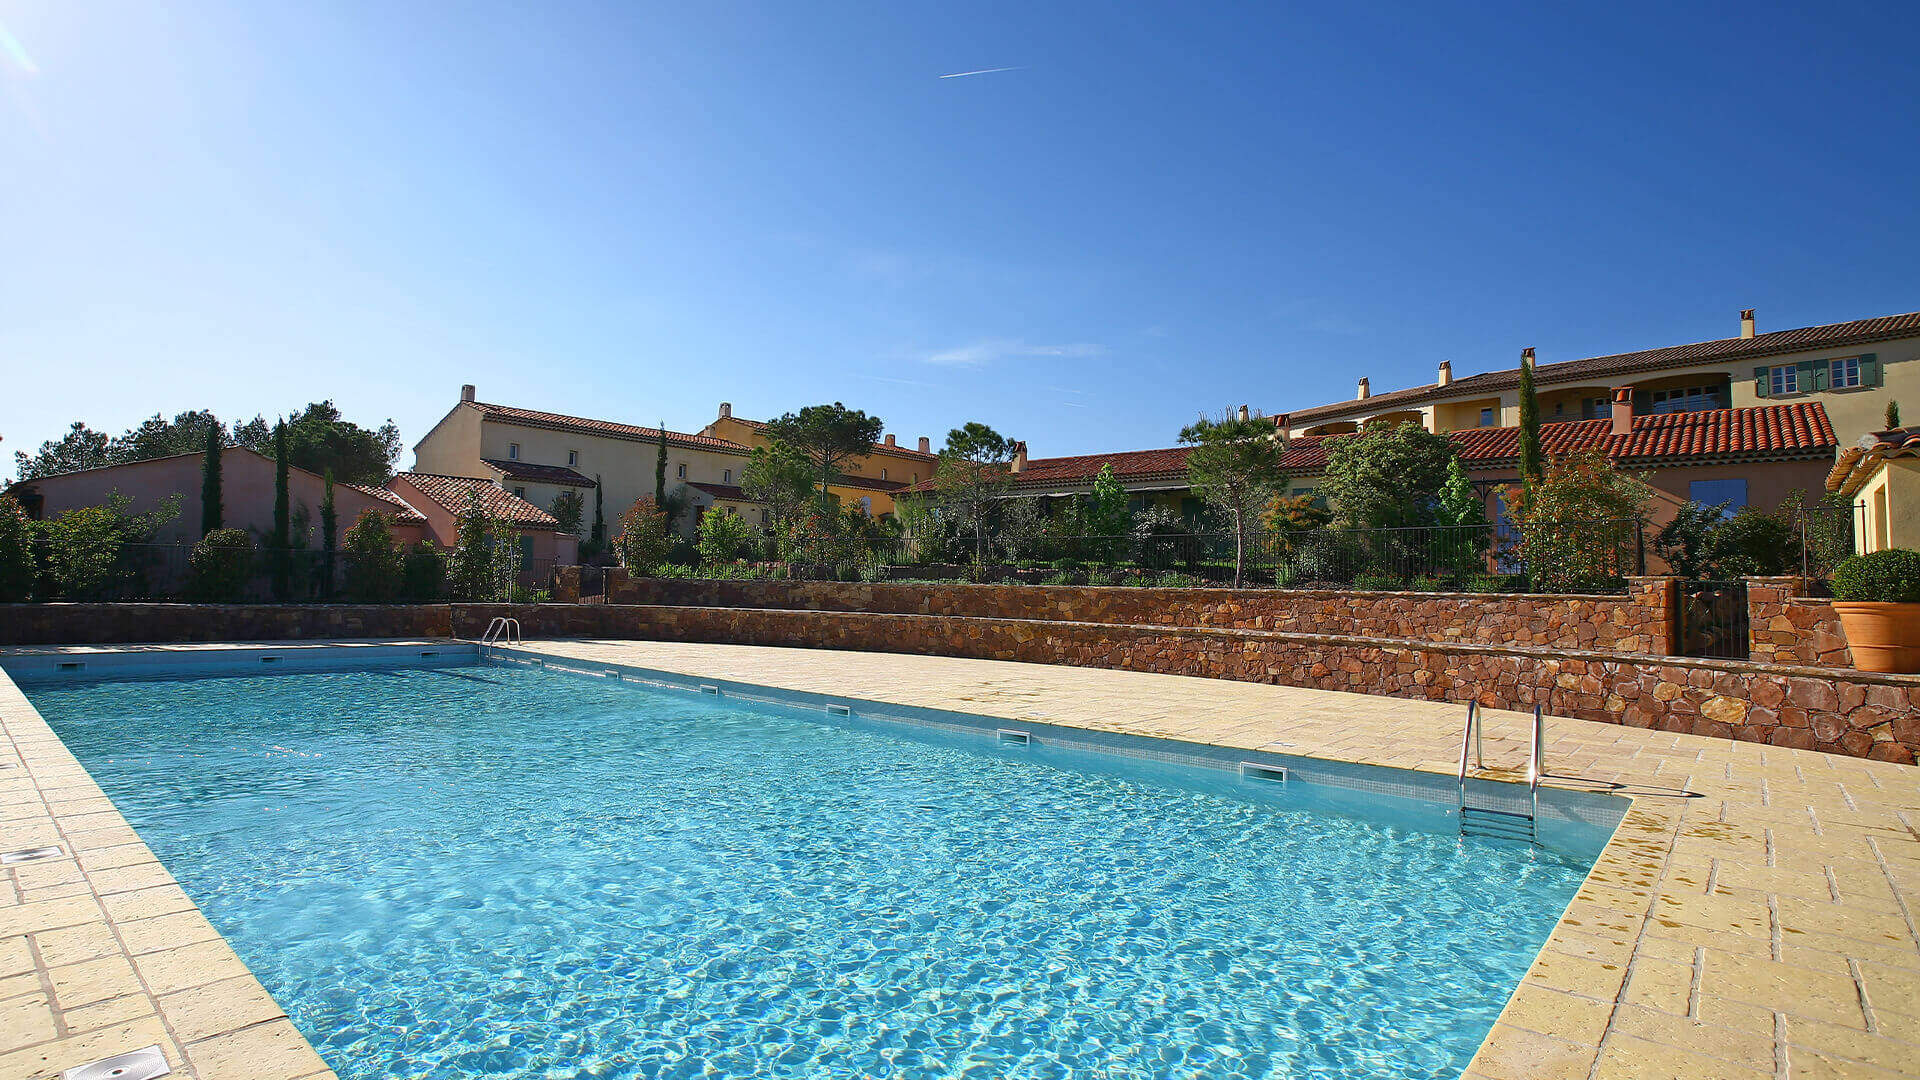 Provence golf and Spa swimming pool with villa in background